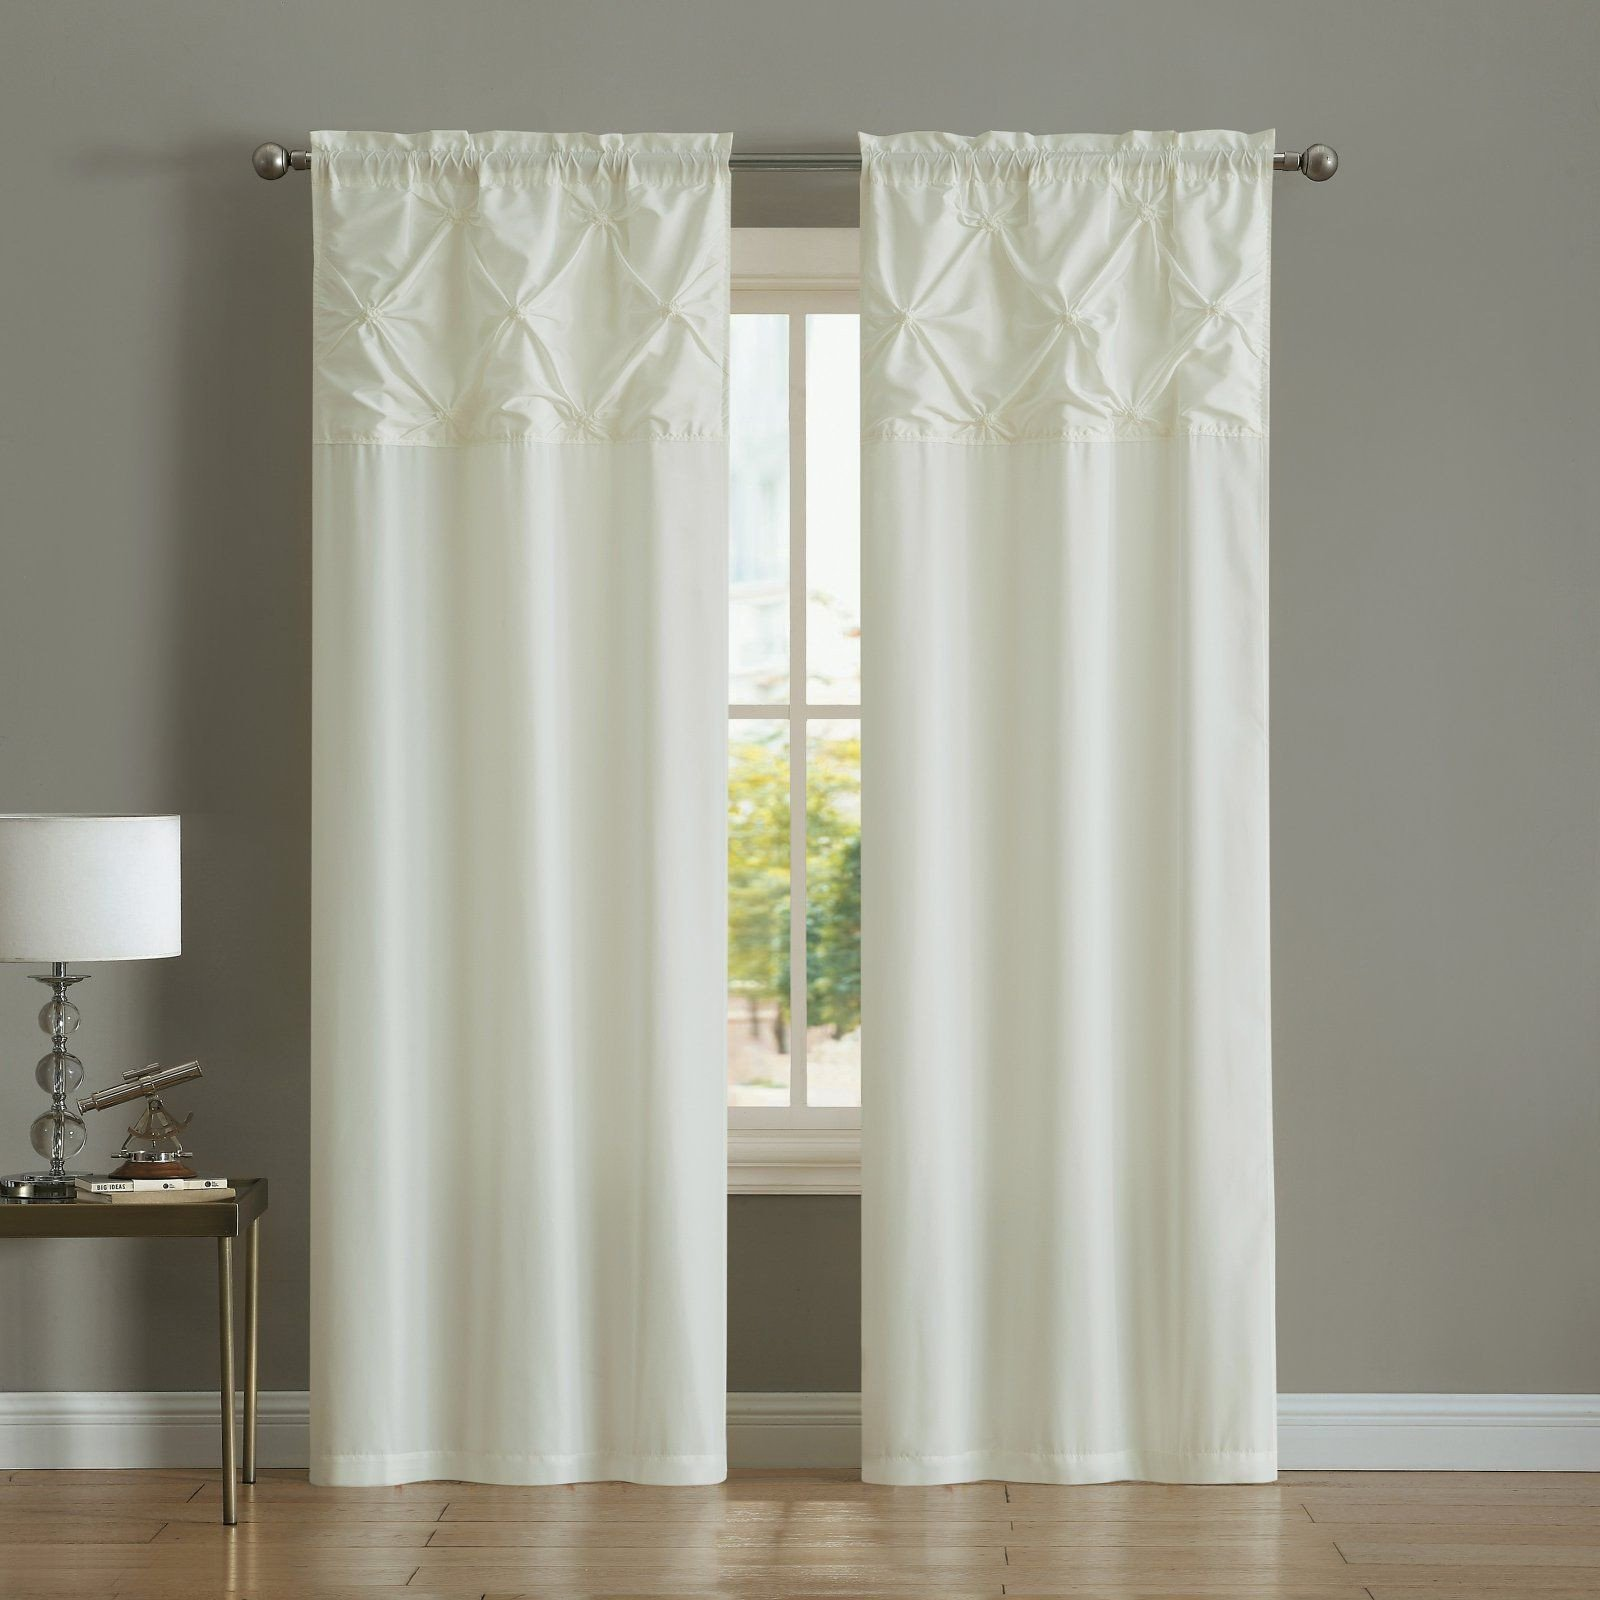 Curtains for Bedroom Windows Lovely Mainstays Pintuck Floral Burst Grommet Window Curtain Set